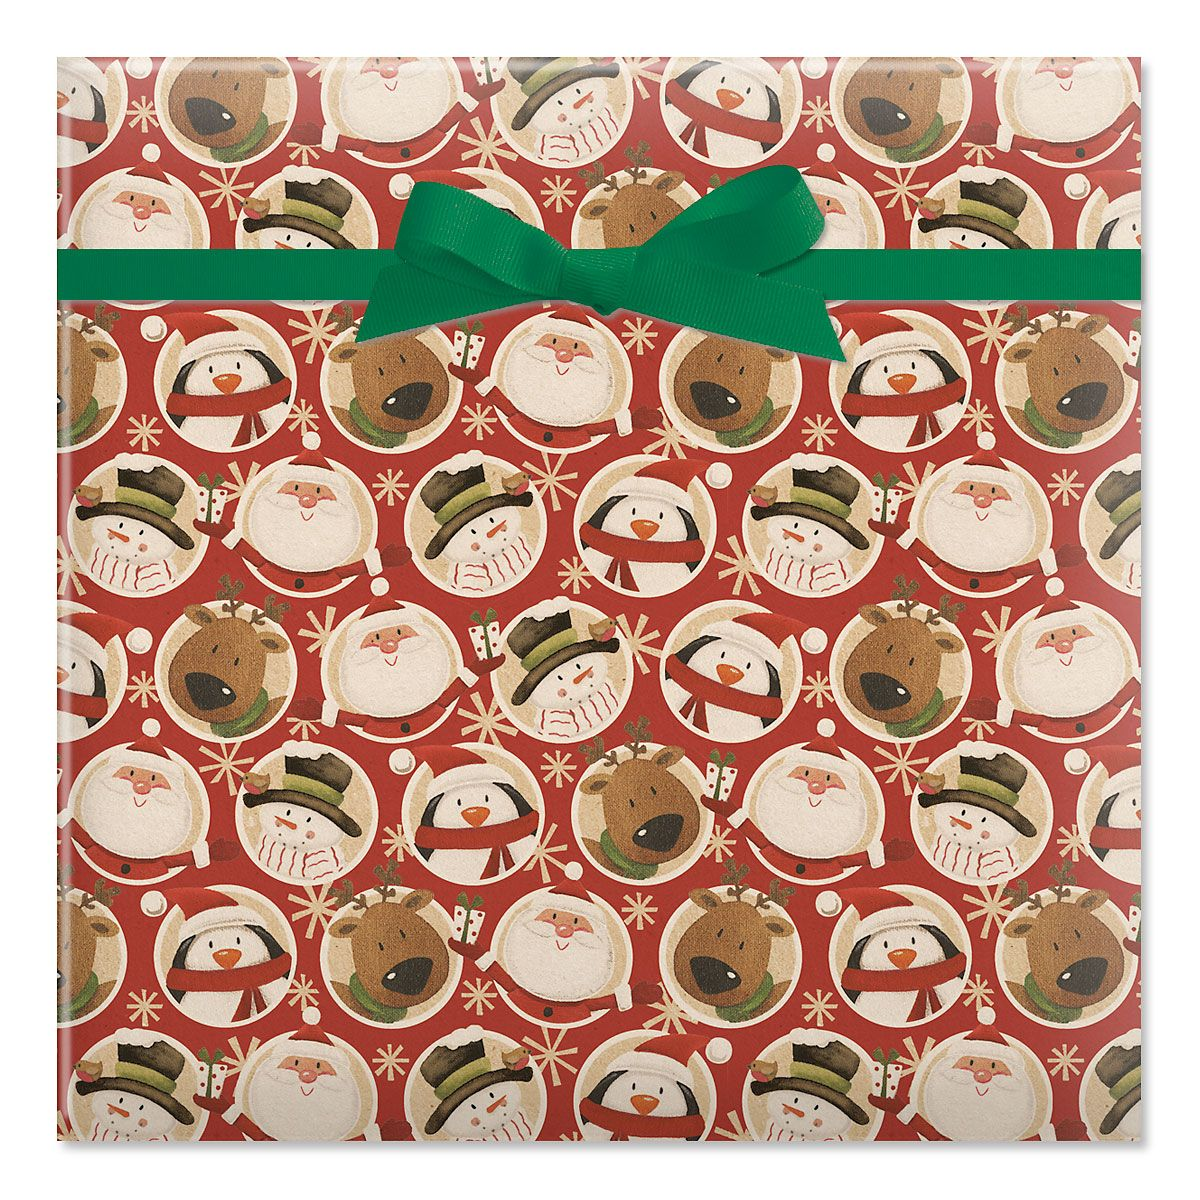 Mixed Folk Characters Jumbo Rolled Gift Wrap